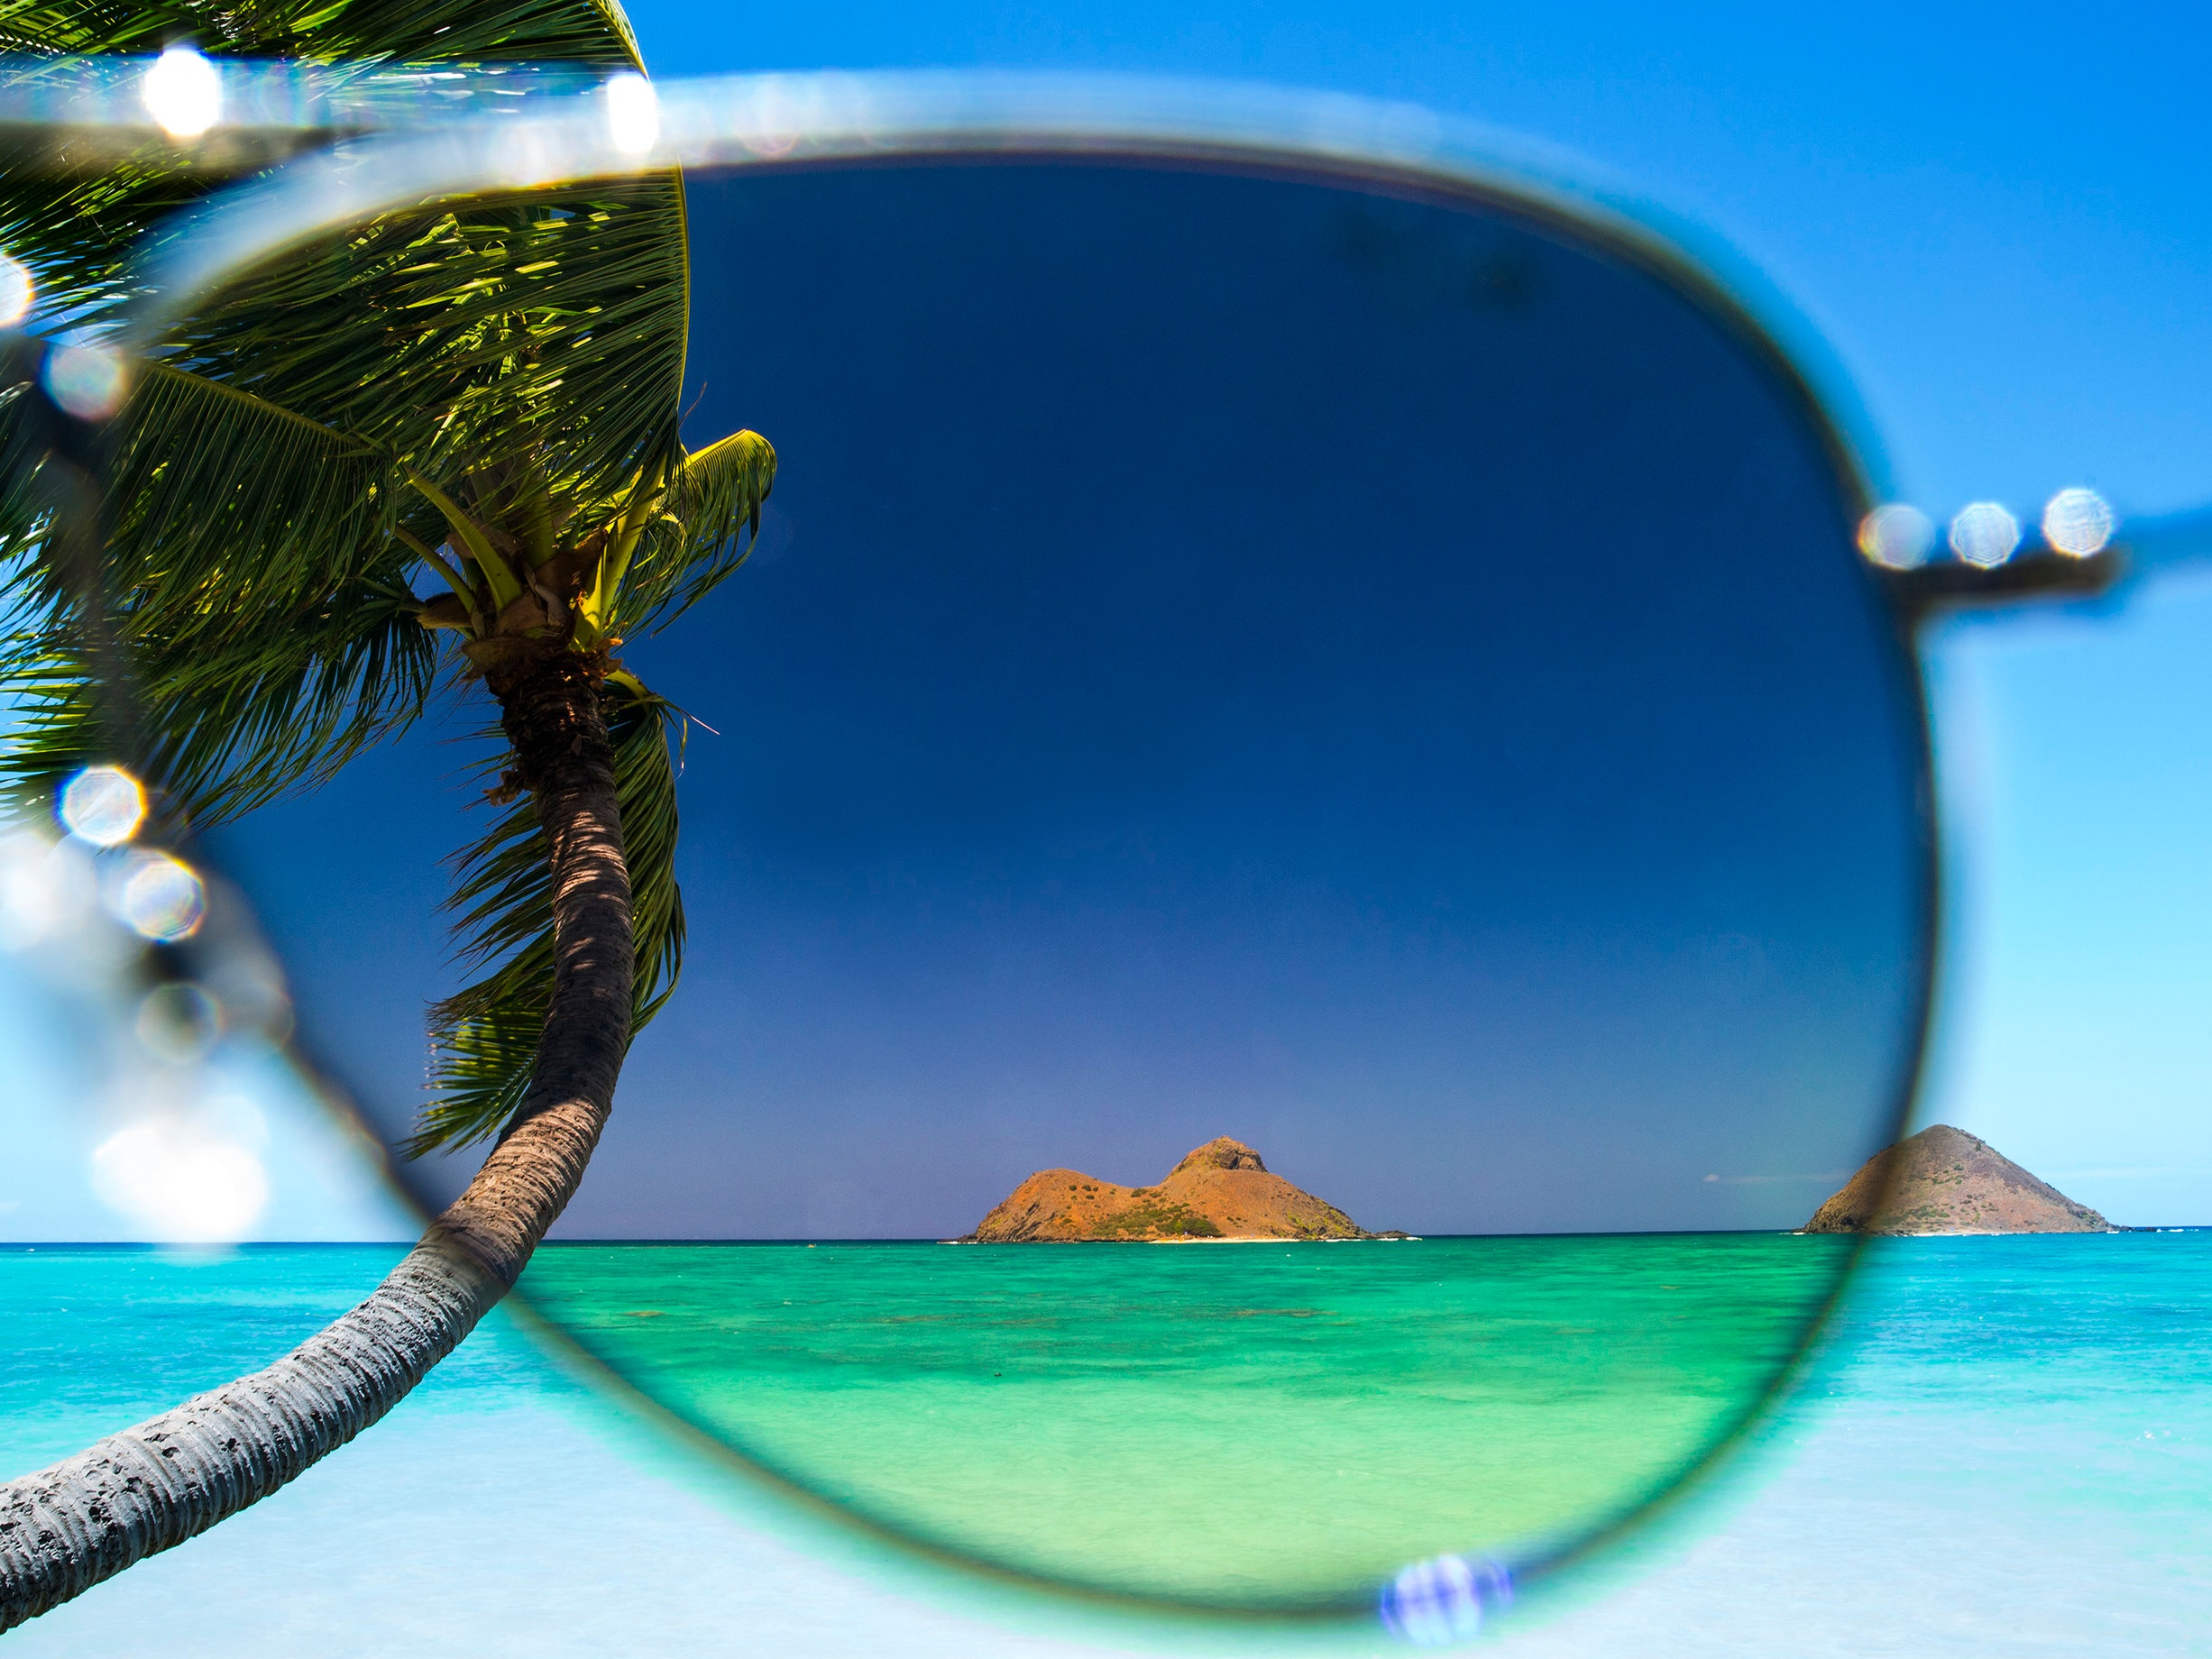 Polarized Lenses - Maui Jim's patented PolarizedPlus2 technology keeps colours vivid, bright, and true. Water is crystal clear and the sky is bluer… no other sunglass offers the same level of visual acuity and colour enhancement.